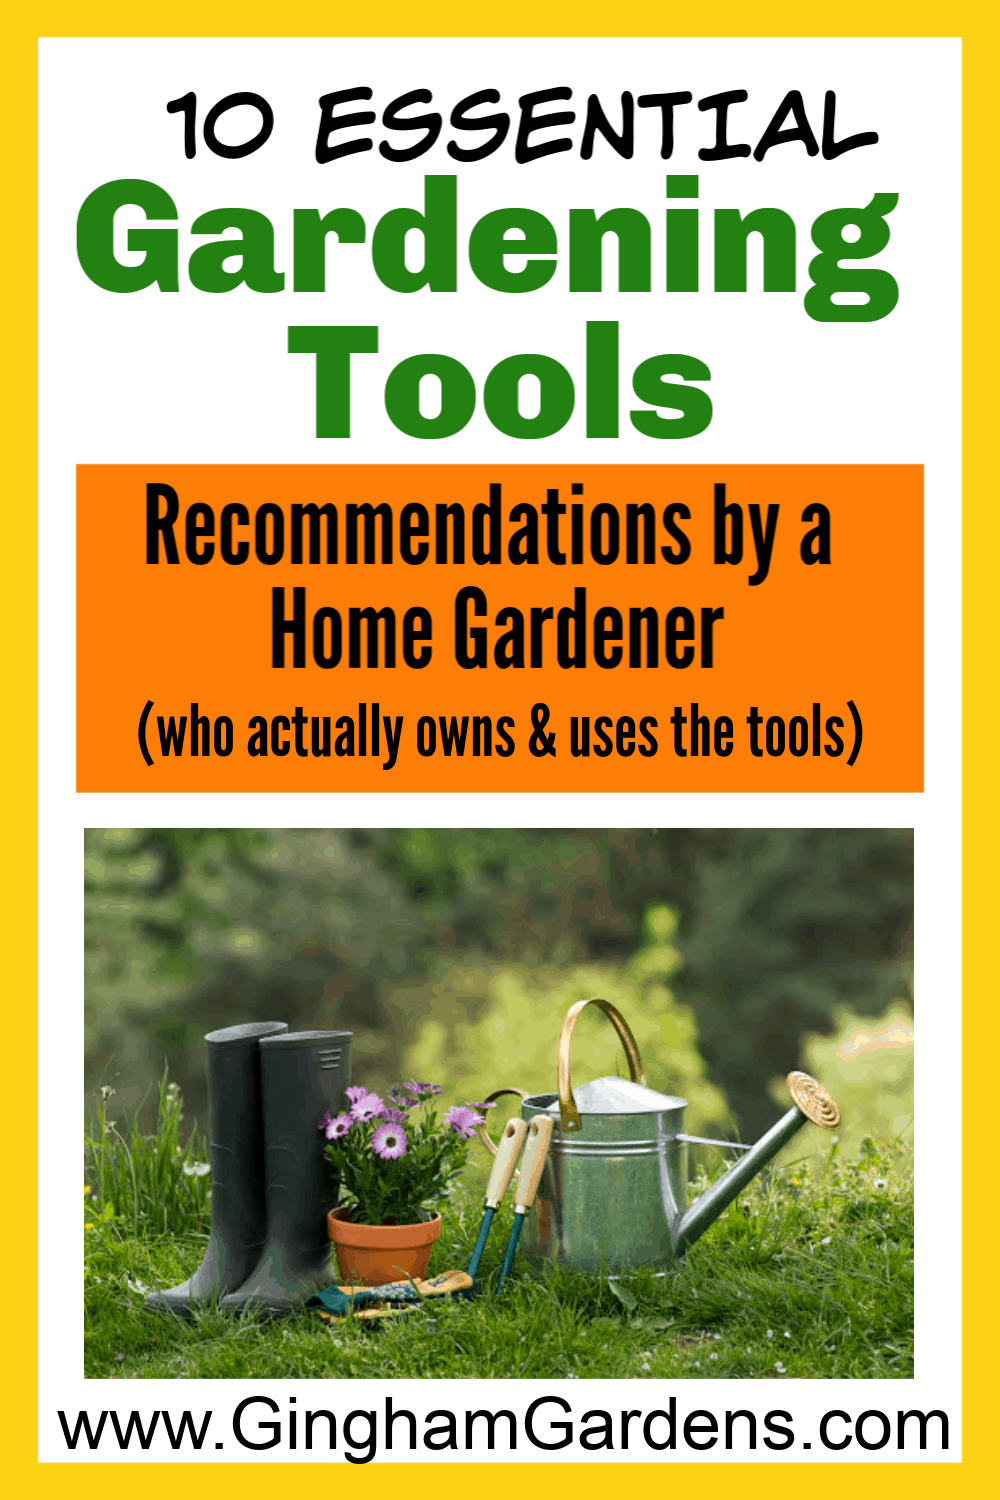 10 Essential Gardening Tools